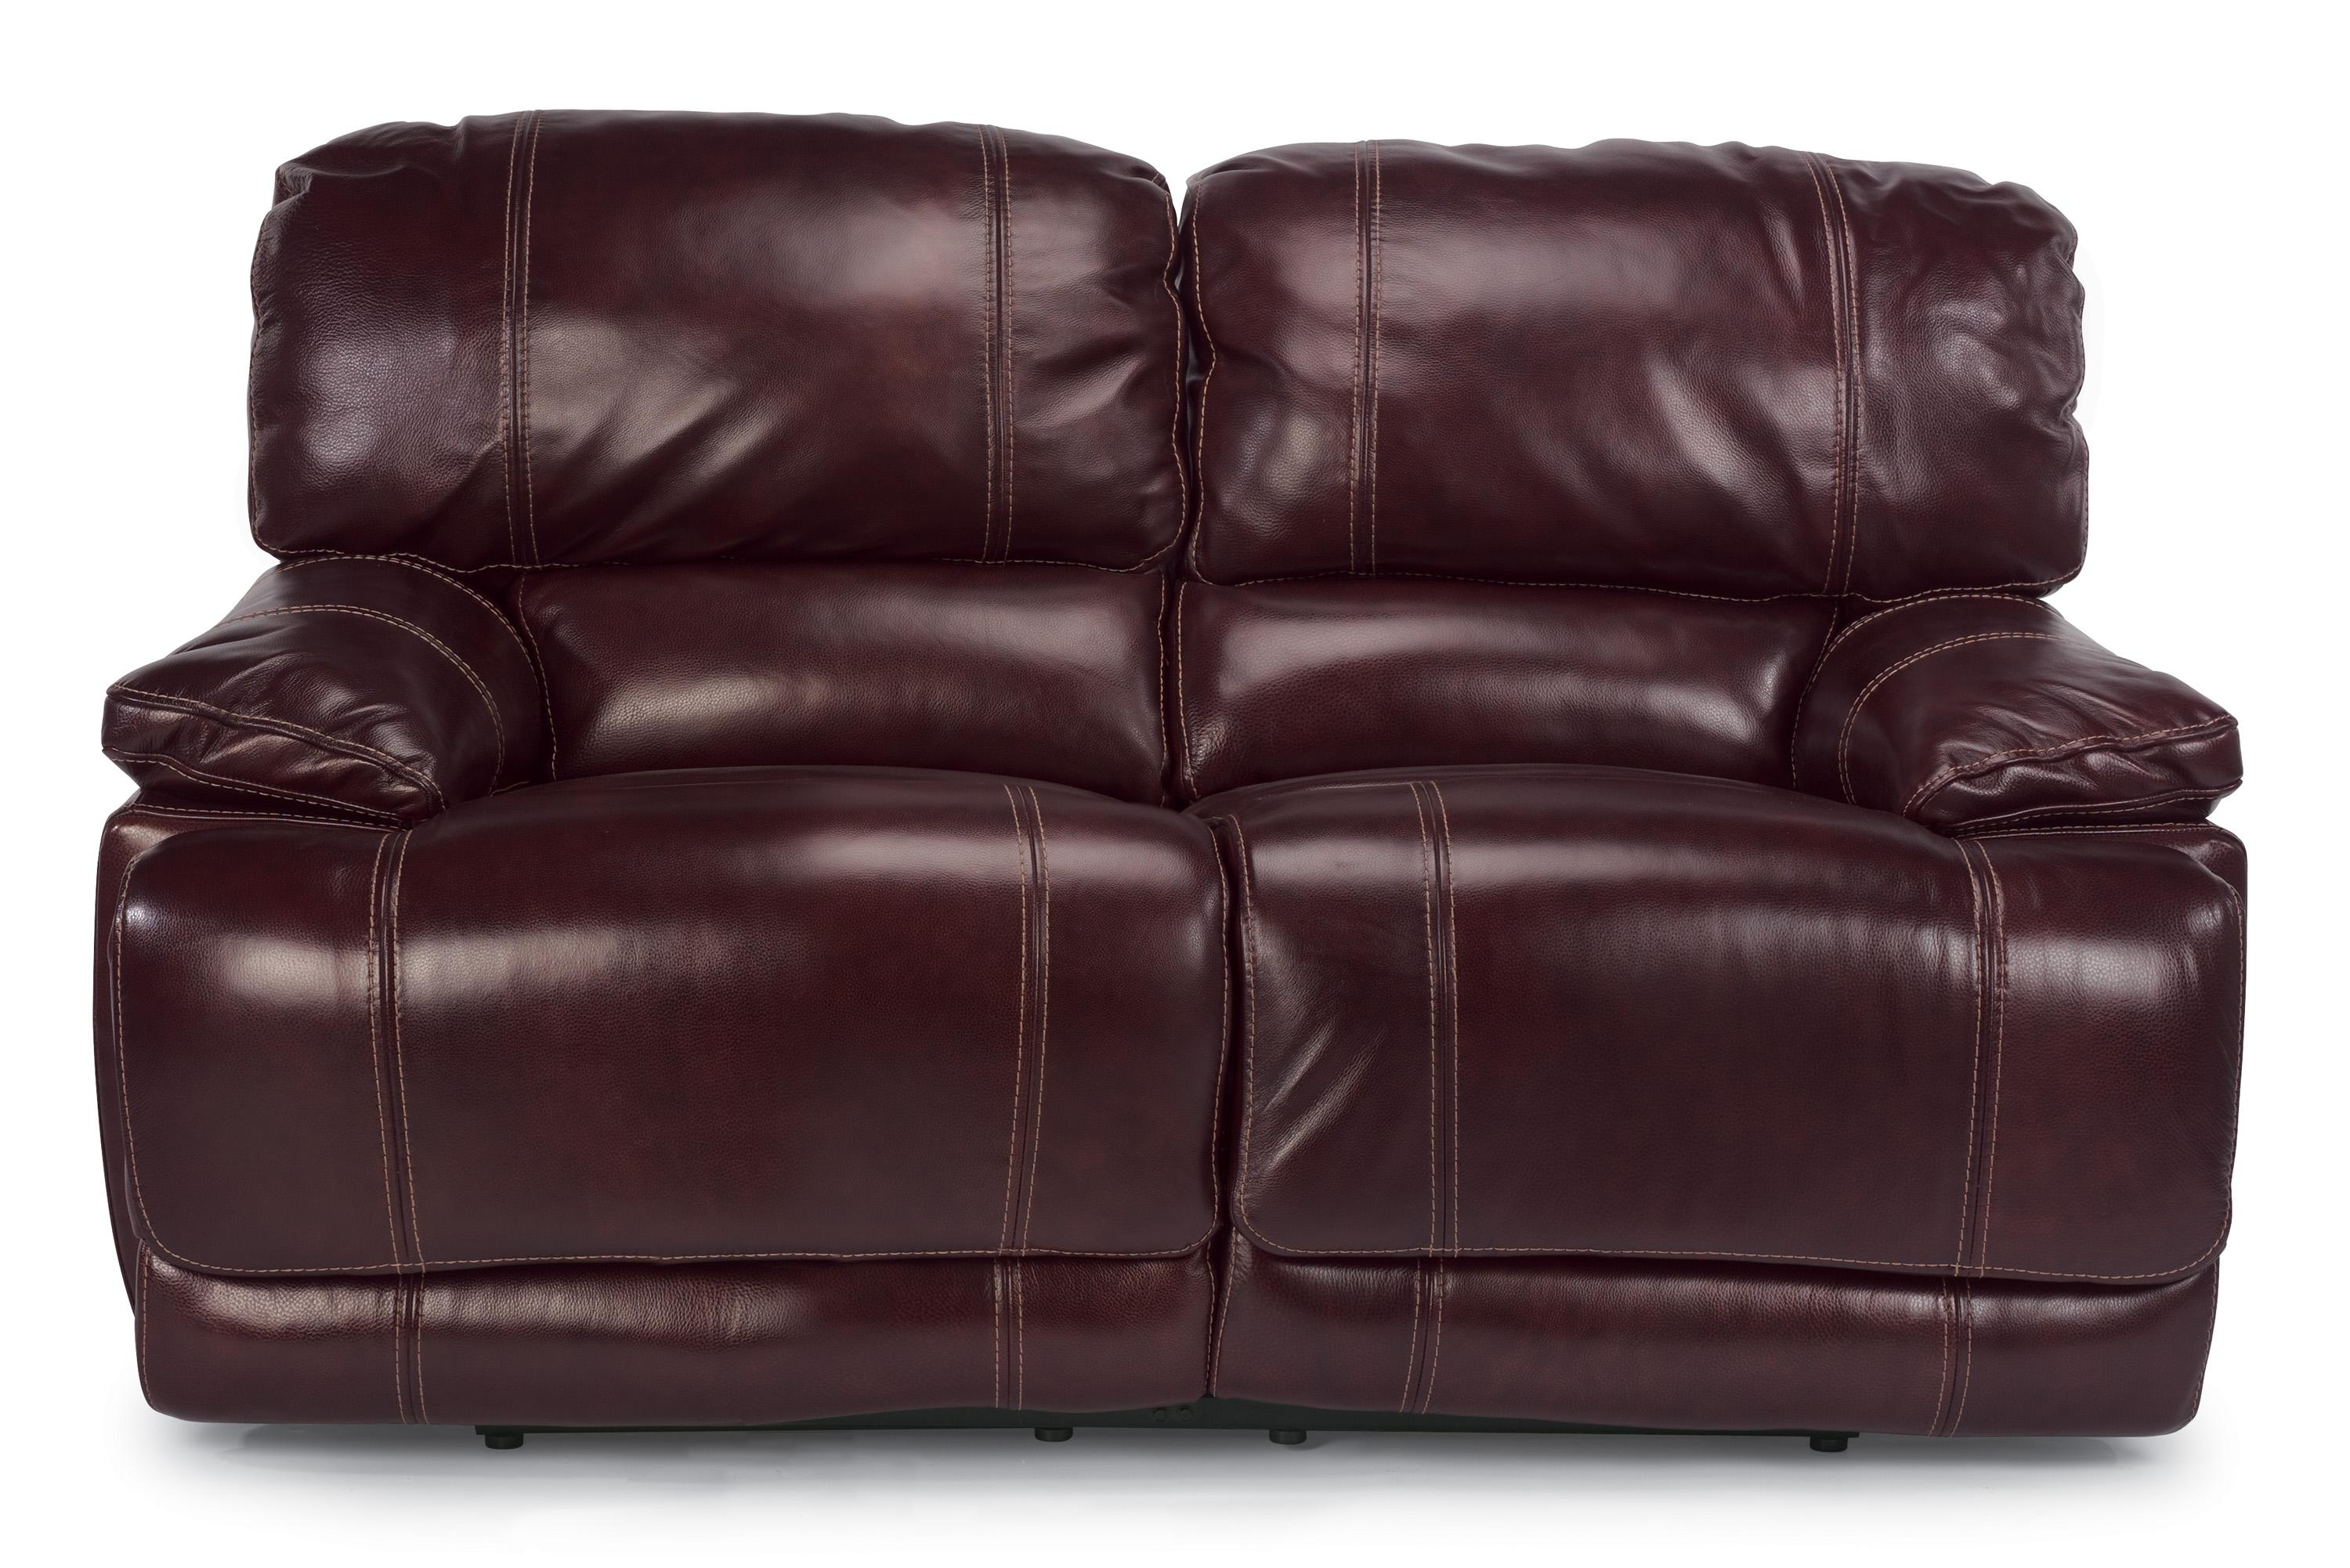 Flexsteel Latitudes - Belmont Power Reclining Love Seat - Item Number: 1250-60P